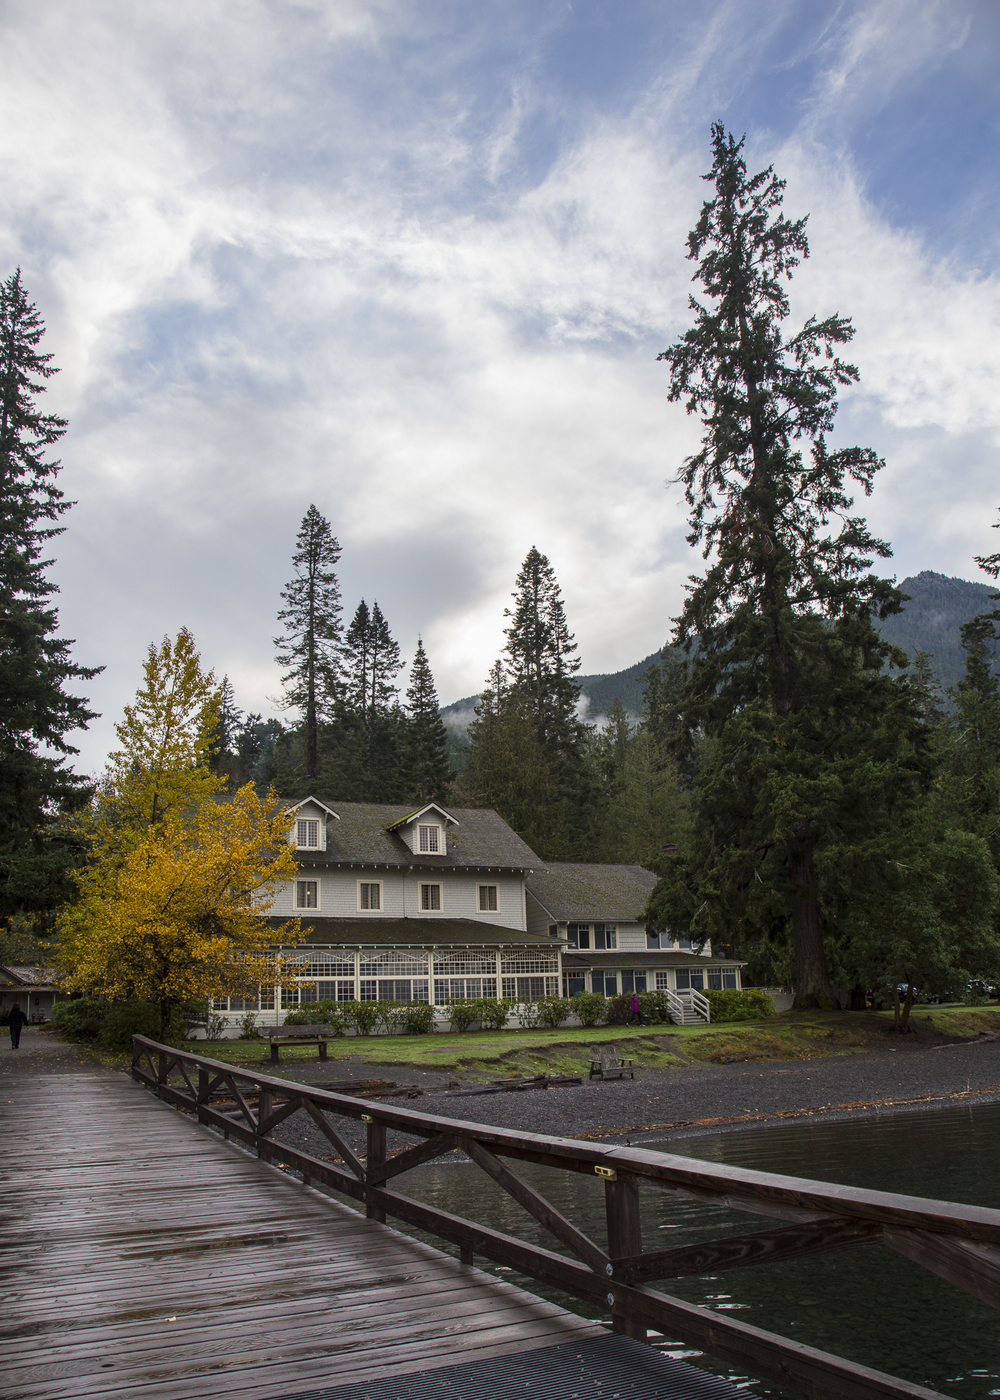 Amazingly, there was some blue sky over Lake Crescent Lodge!